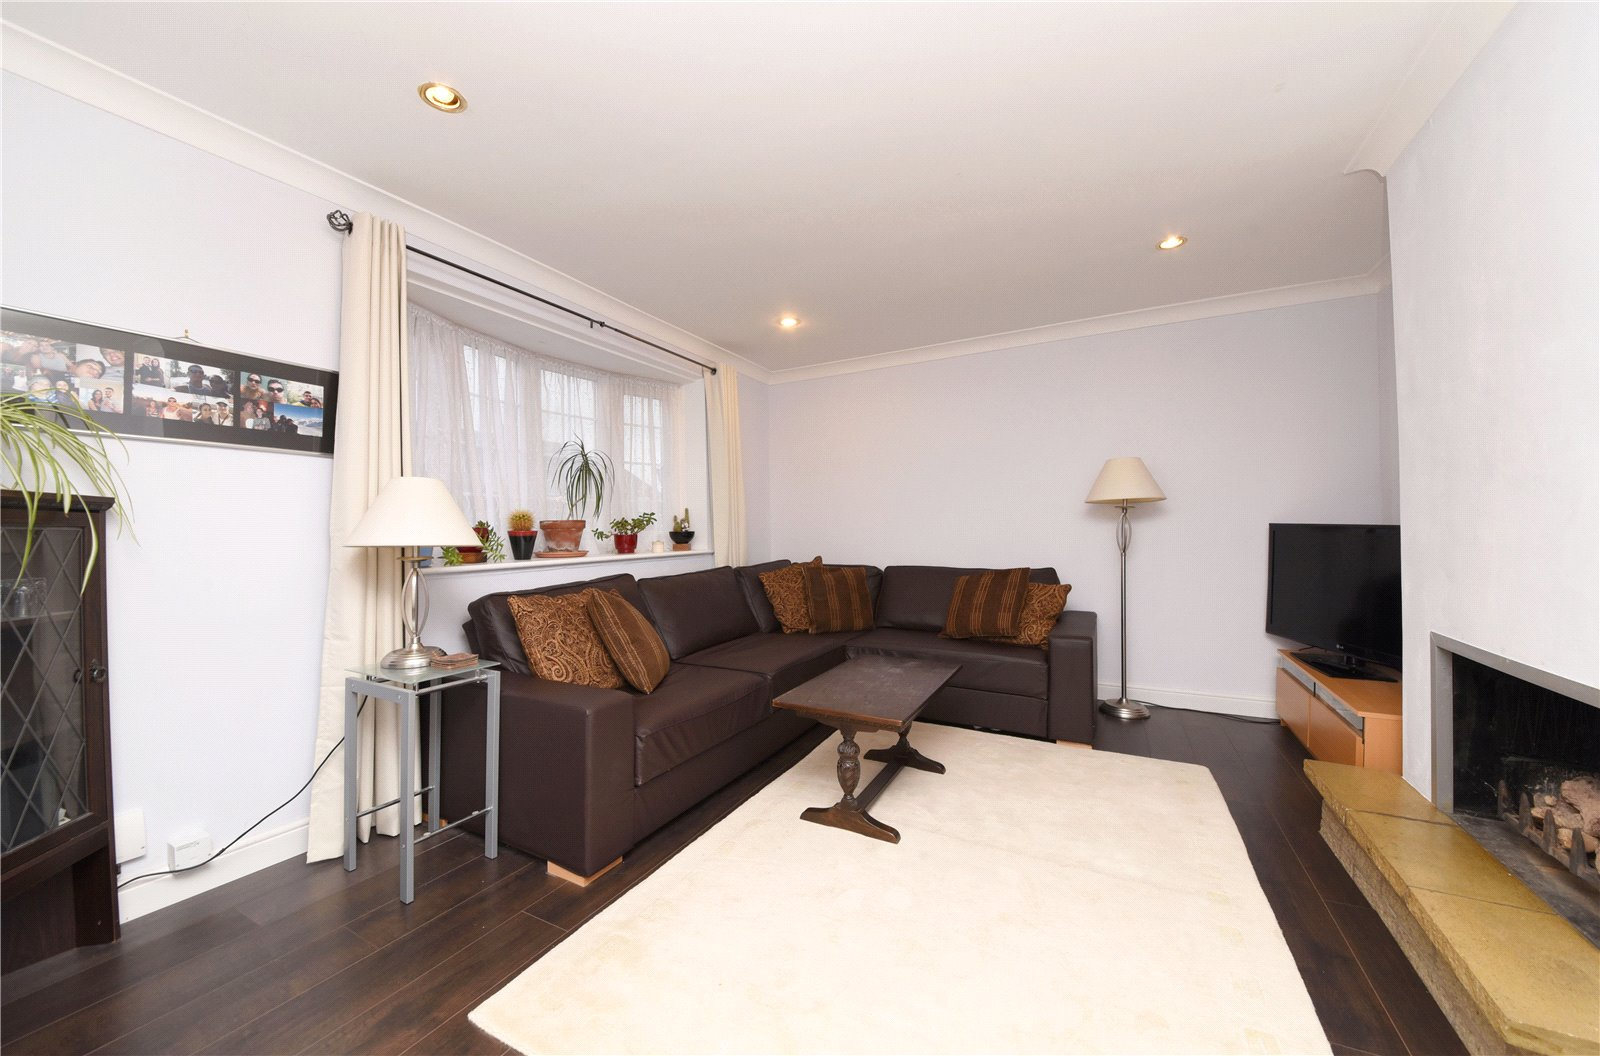 3 bed house for sale in Edgware, HA8 8XT  - Property Image 8